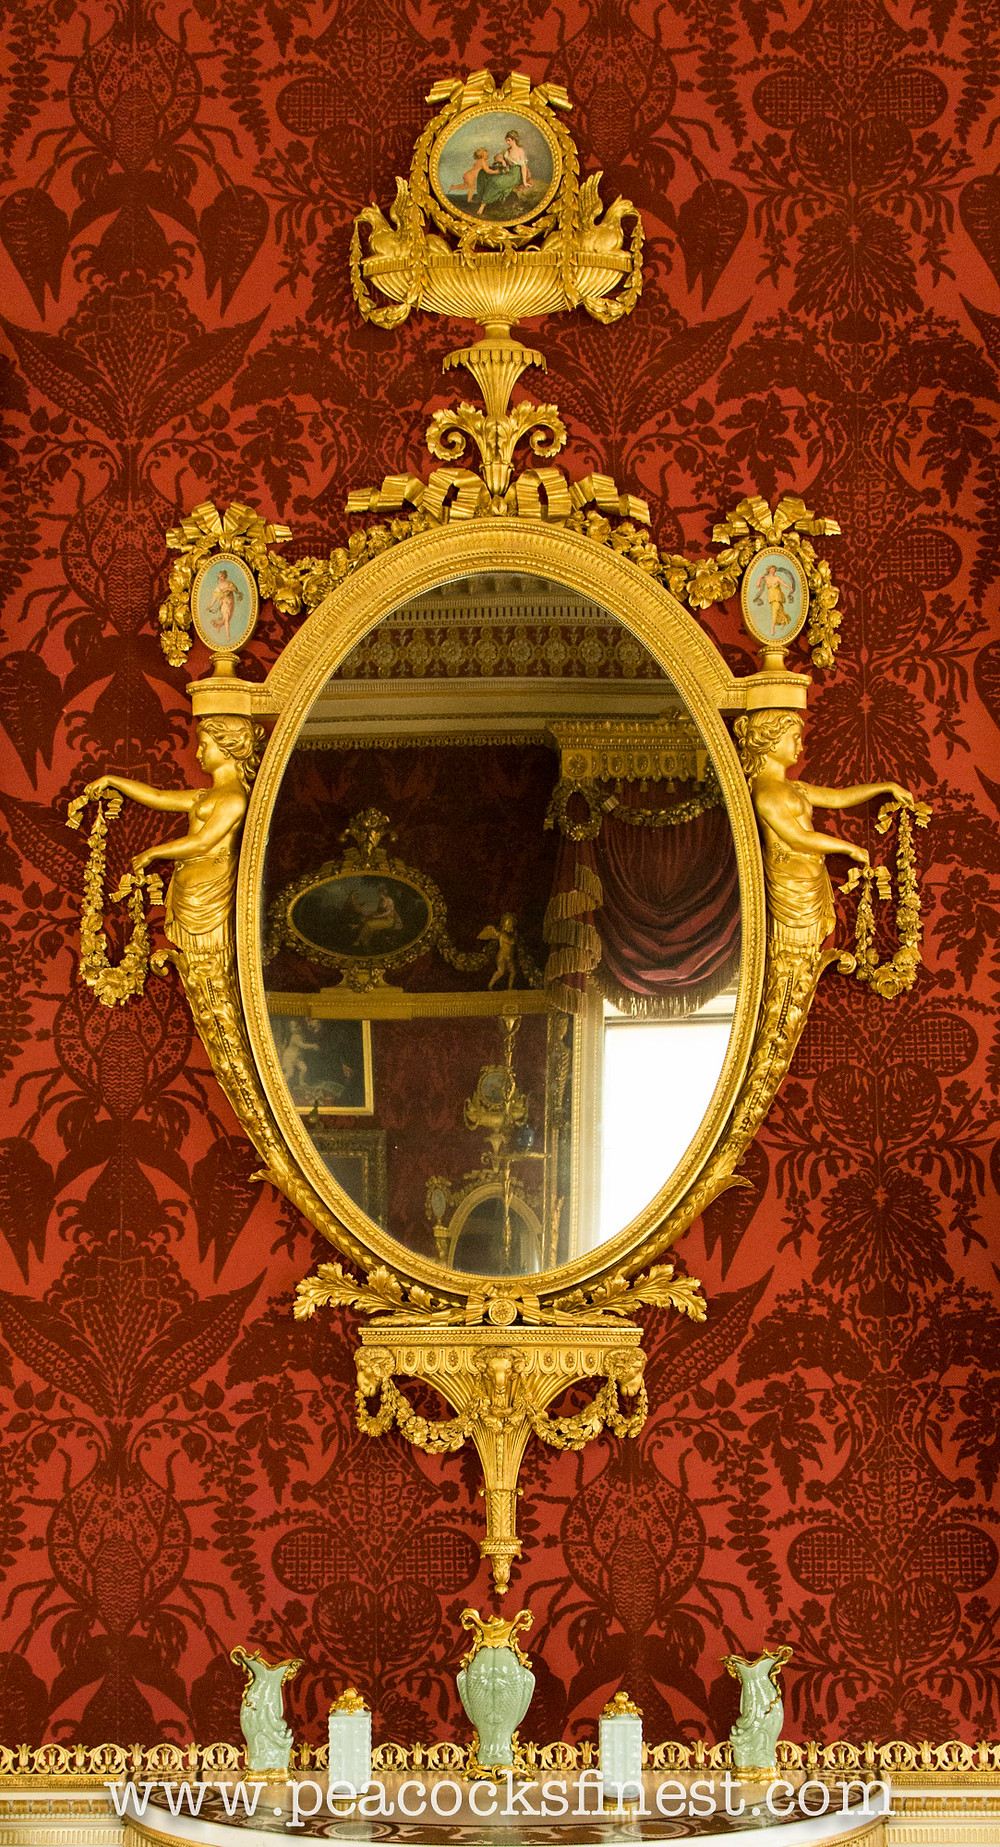 Harewood House, The Gallery. One of a pair of George III giltwood mirrors by Thomas Chippendale